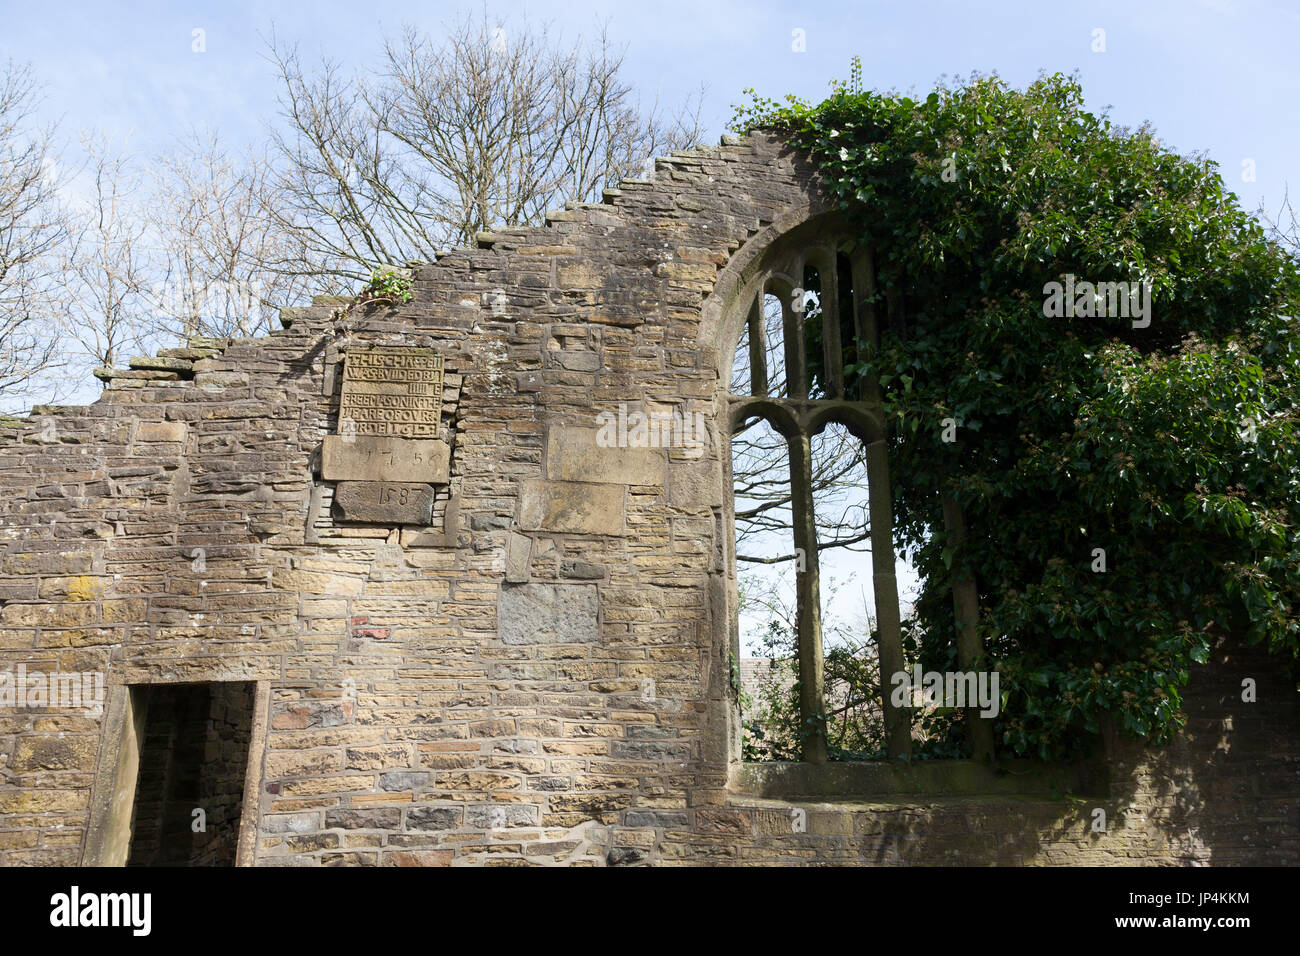 Remains of the Bell Chapel where Patrick Brontë preached, Thornton, West Yorkshire - Stock Image